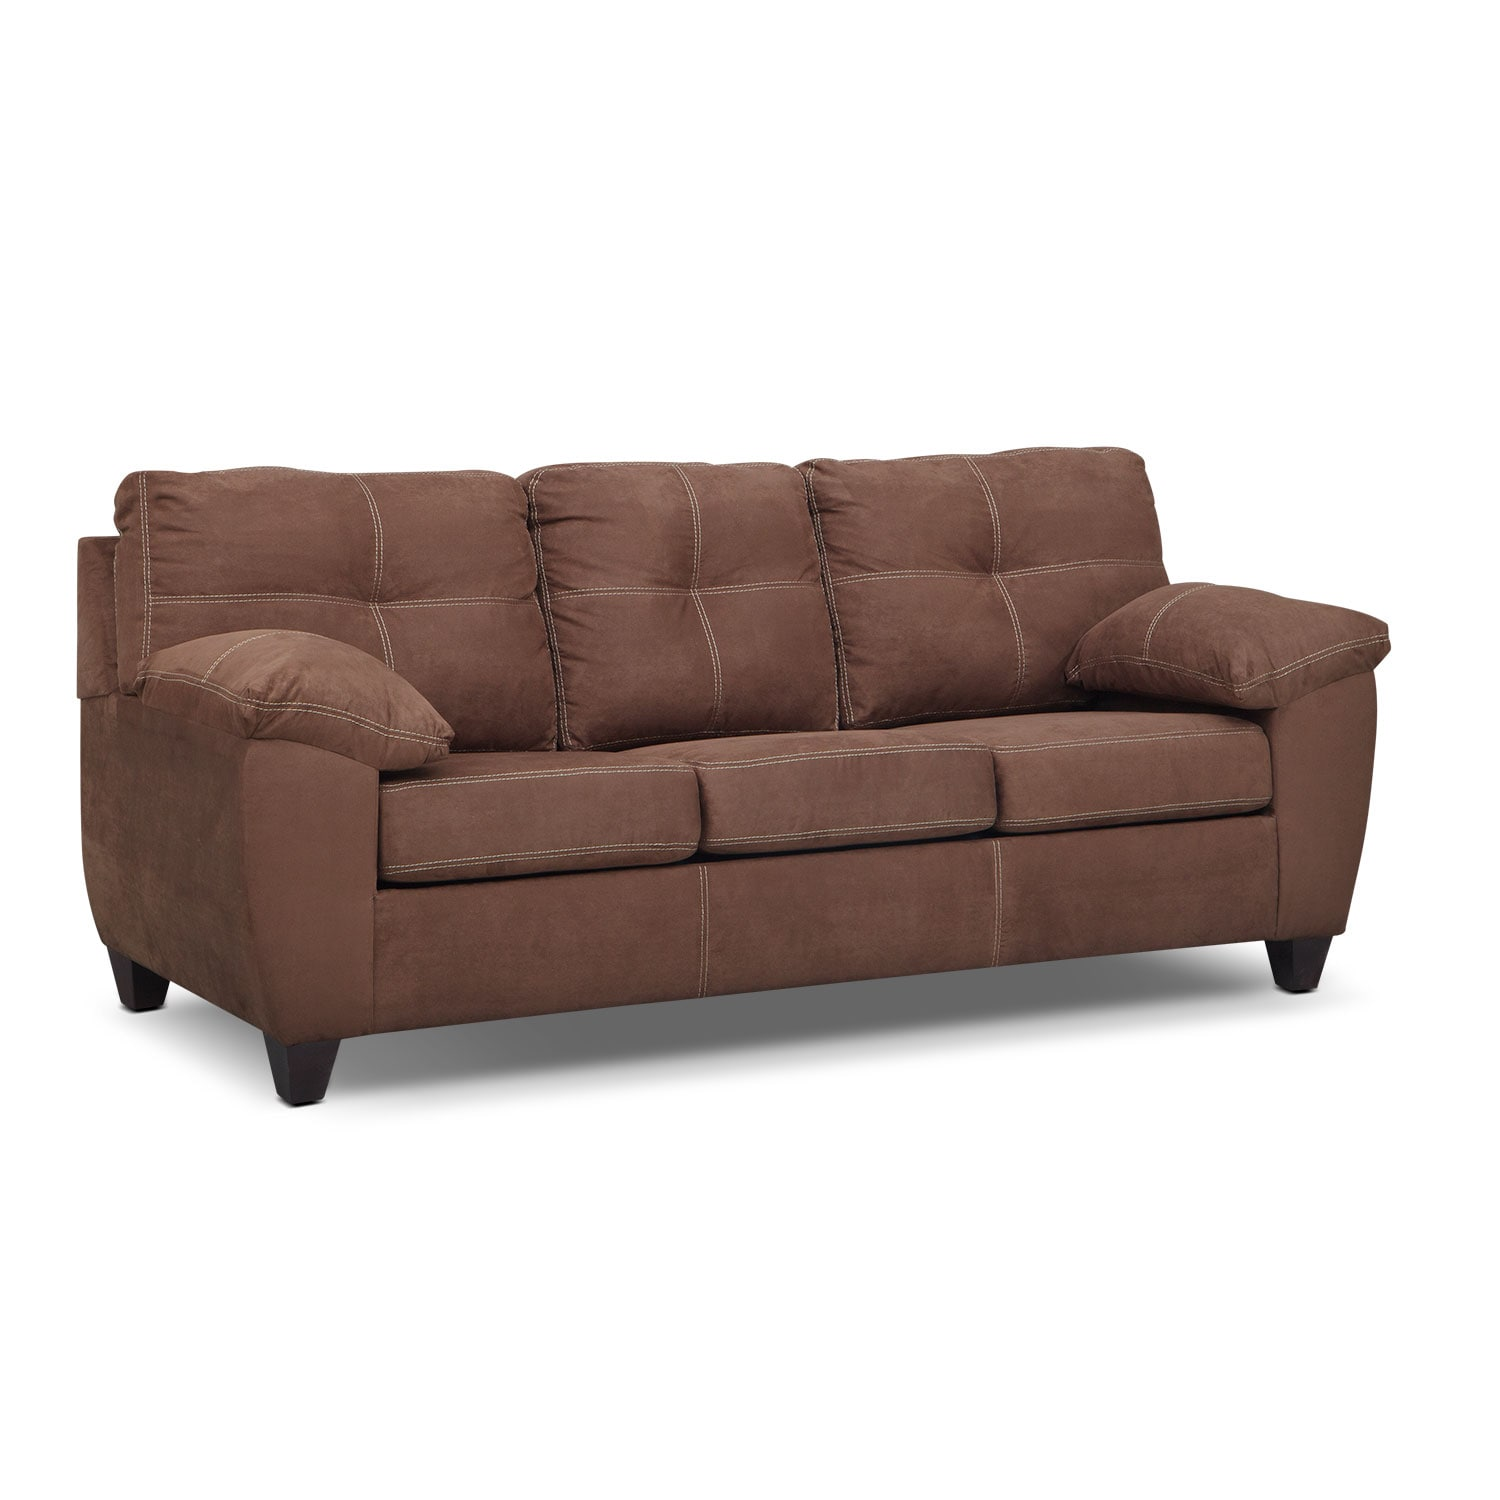 Ricardo Queen Memory Foam Sleeper Sofa Coffee American Signature Furniture